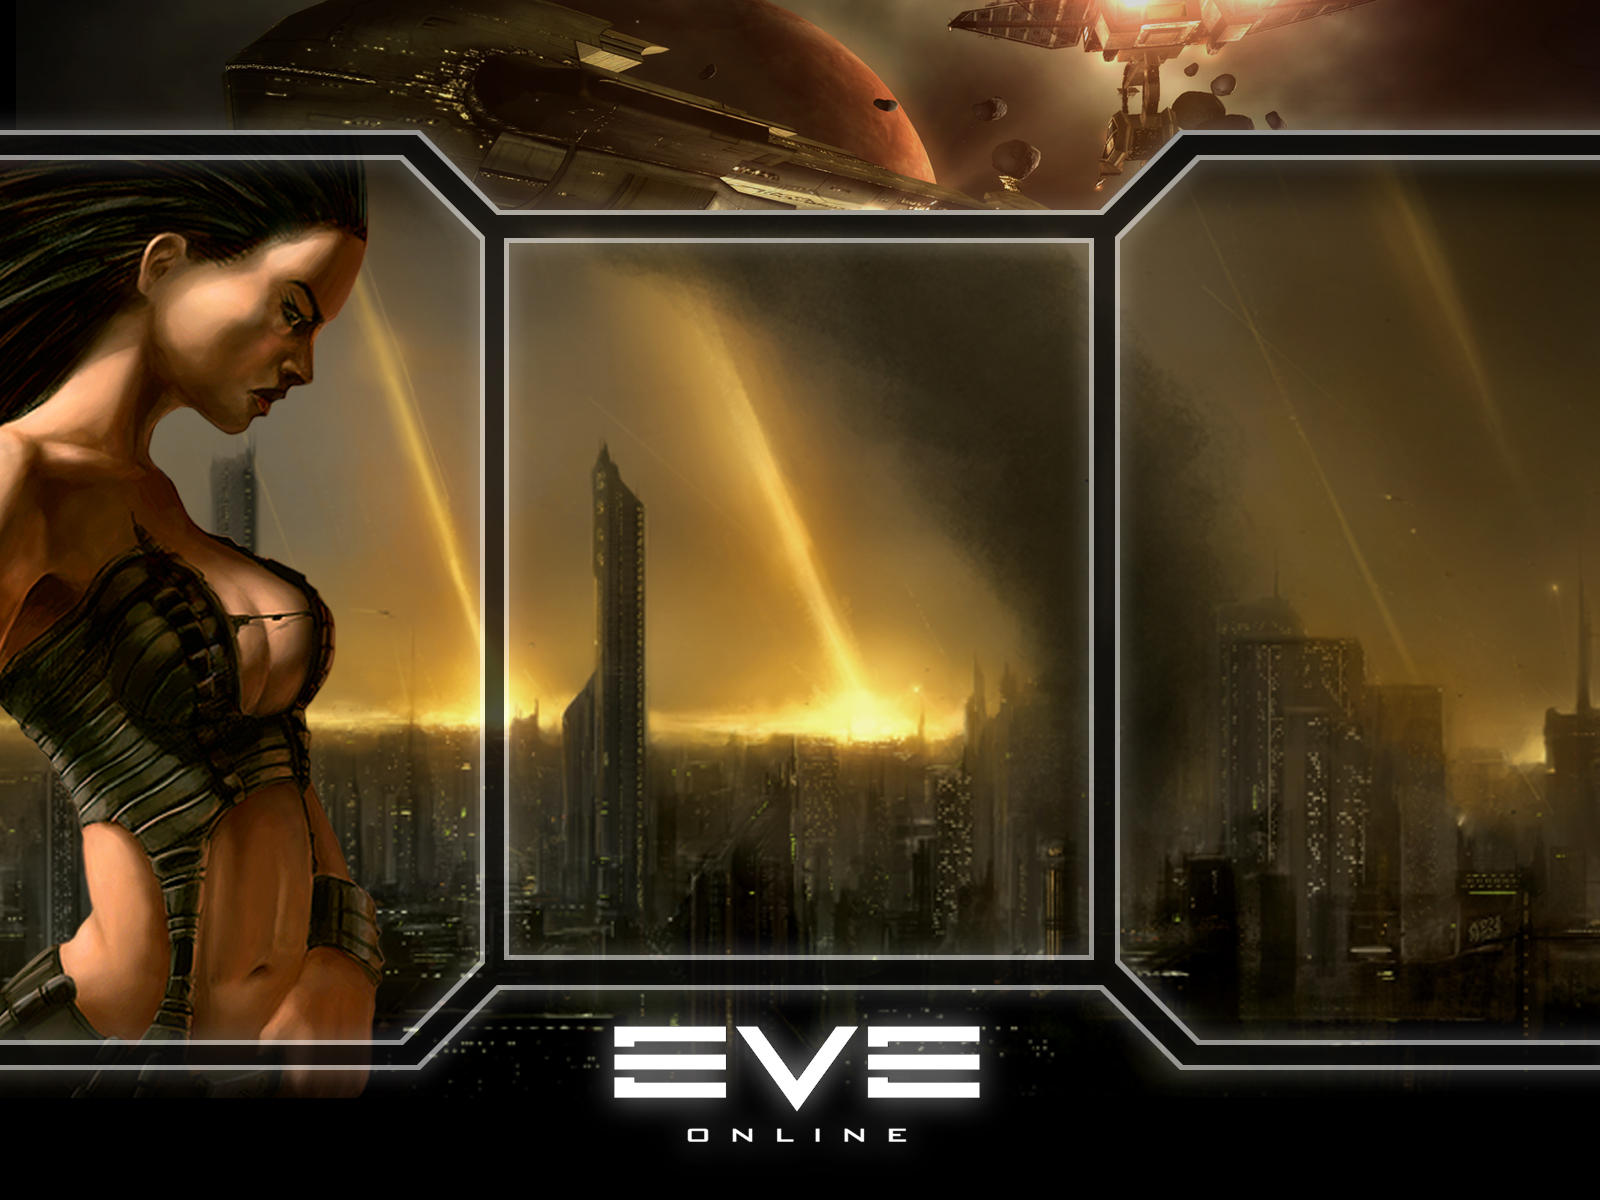 Eve Online by Shadrak